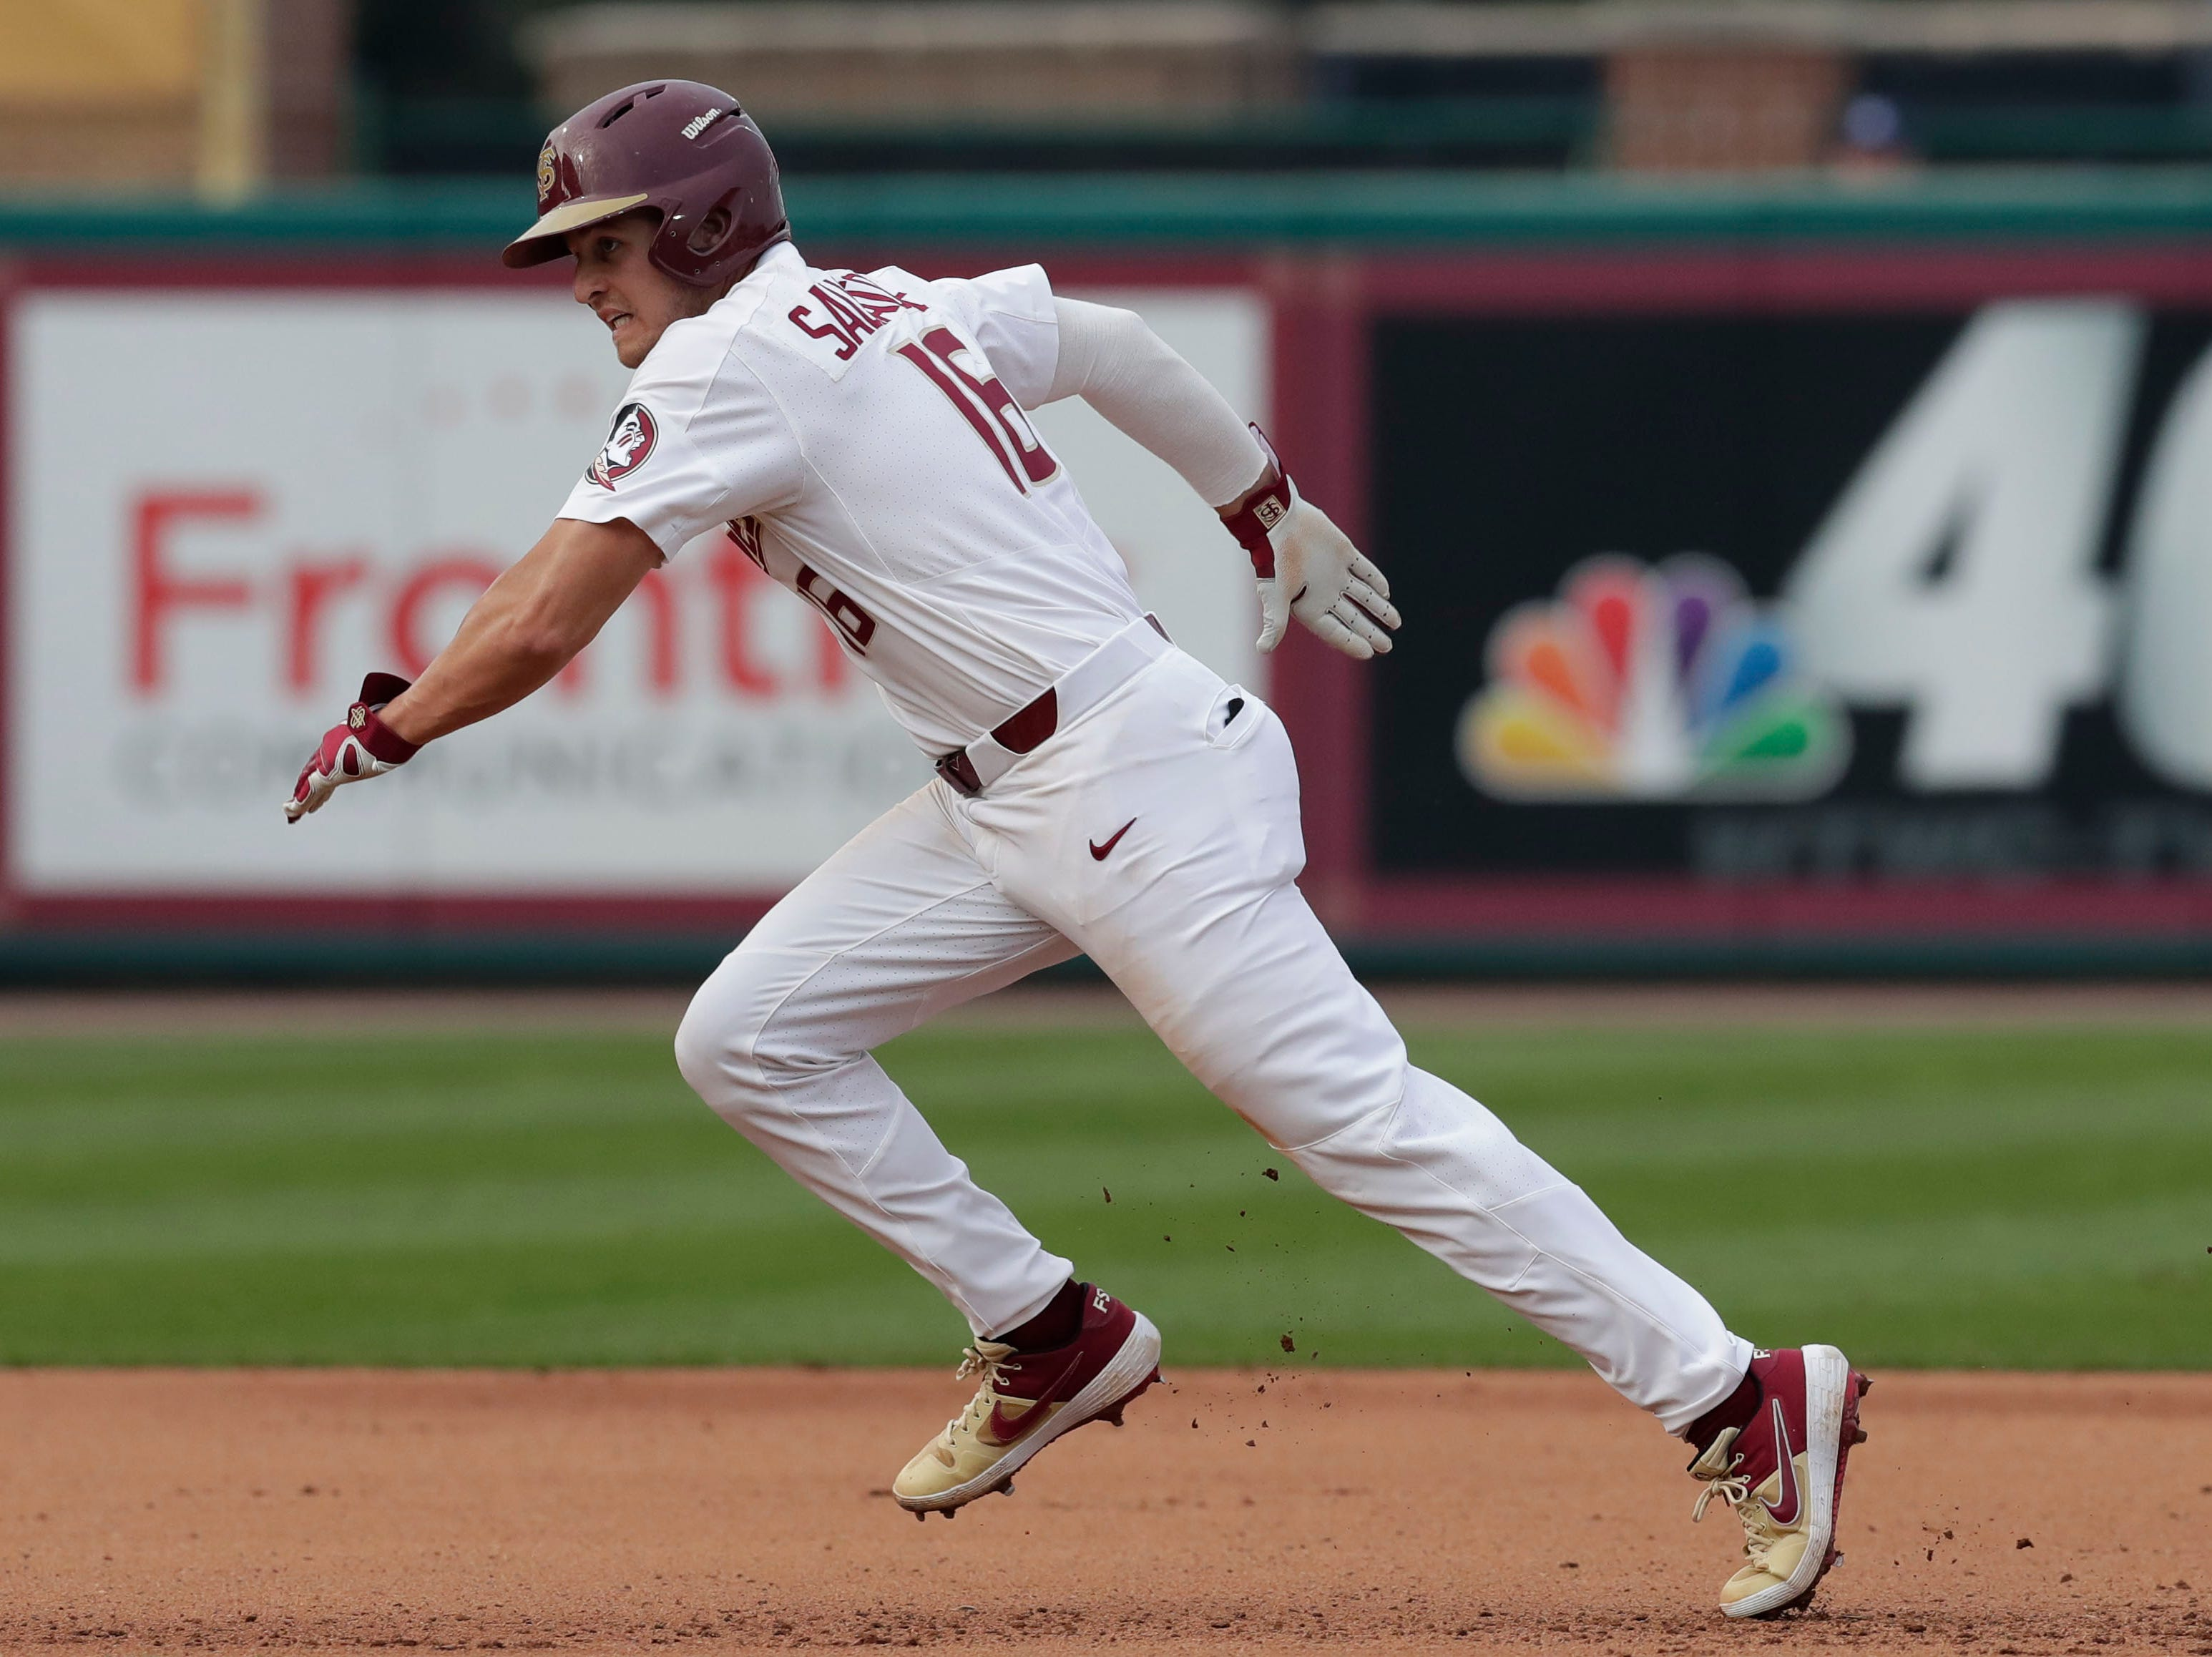 Florida State Seminoles infielder Mike Salvatore (16) makes a run for third as the Florida State Seminoles host the Maine Black Bears in the 2019 season opener game, Friday Feb. 15, 2019.